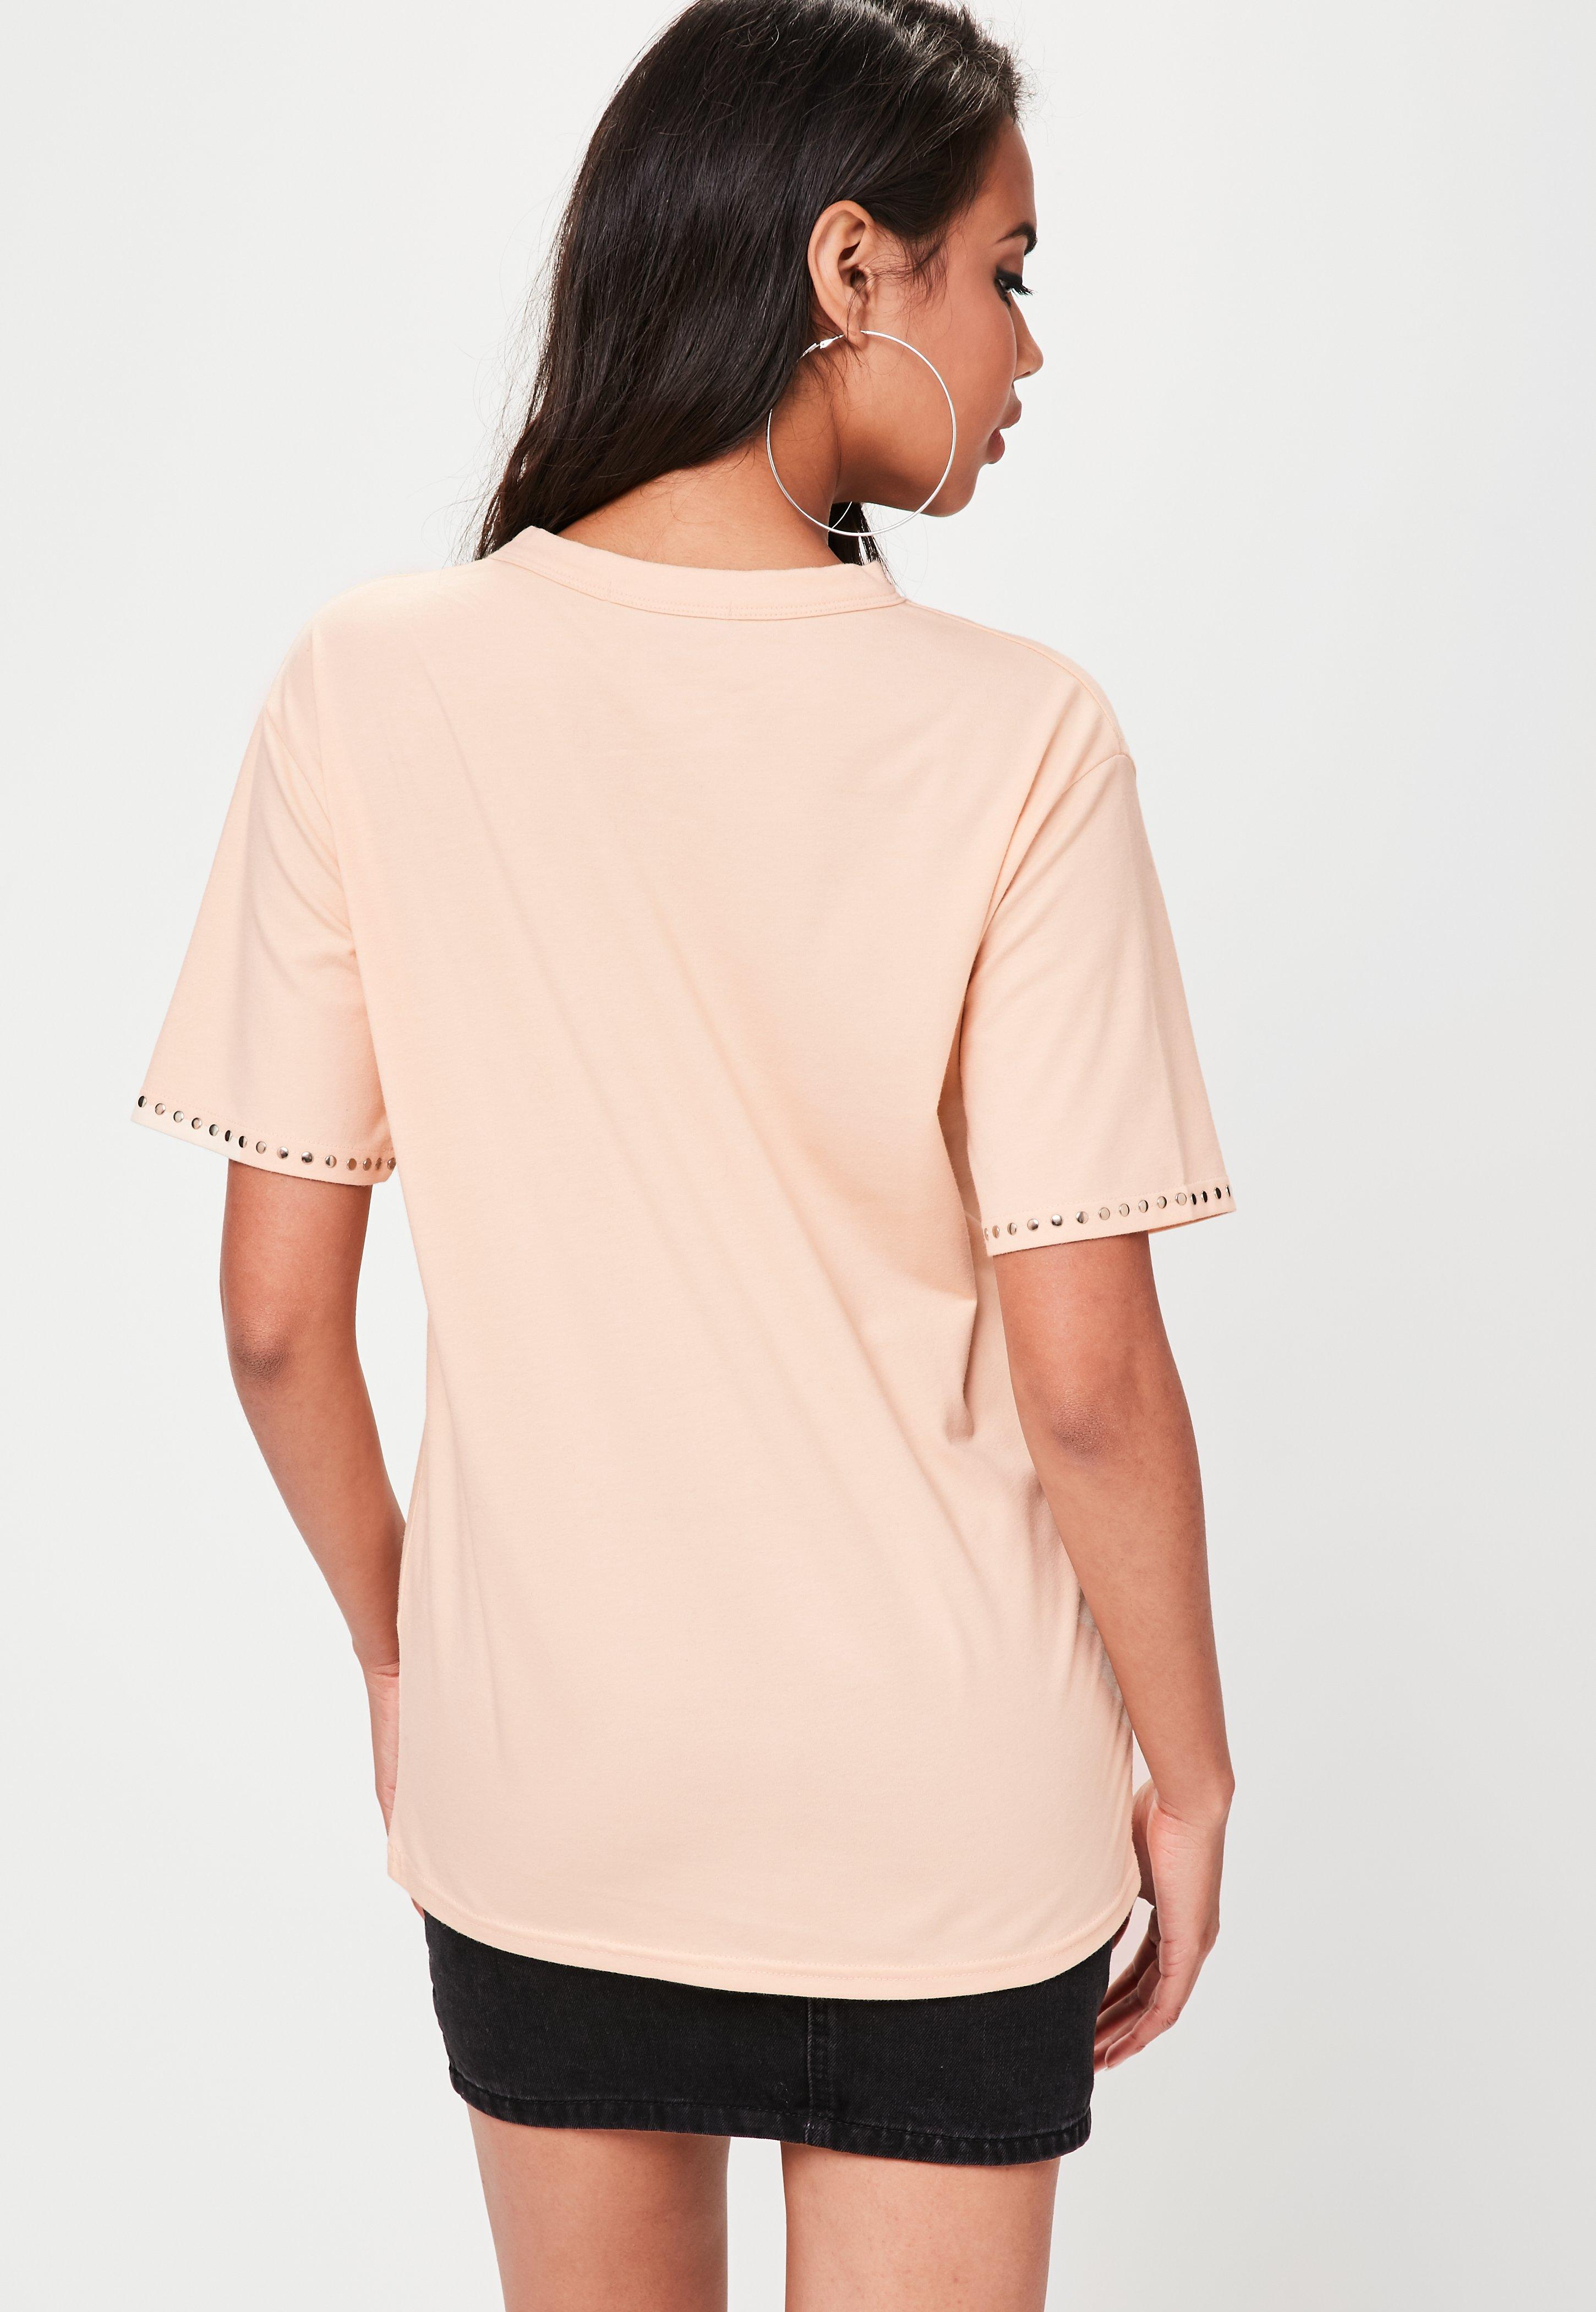 7c844875462 Lyst - Missguided Nude Stud Detail Choker Neck T-shirt in Natural